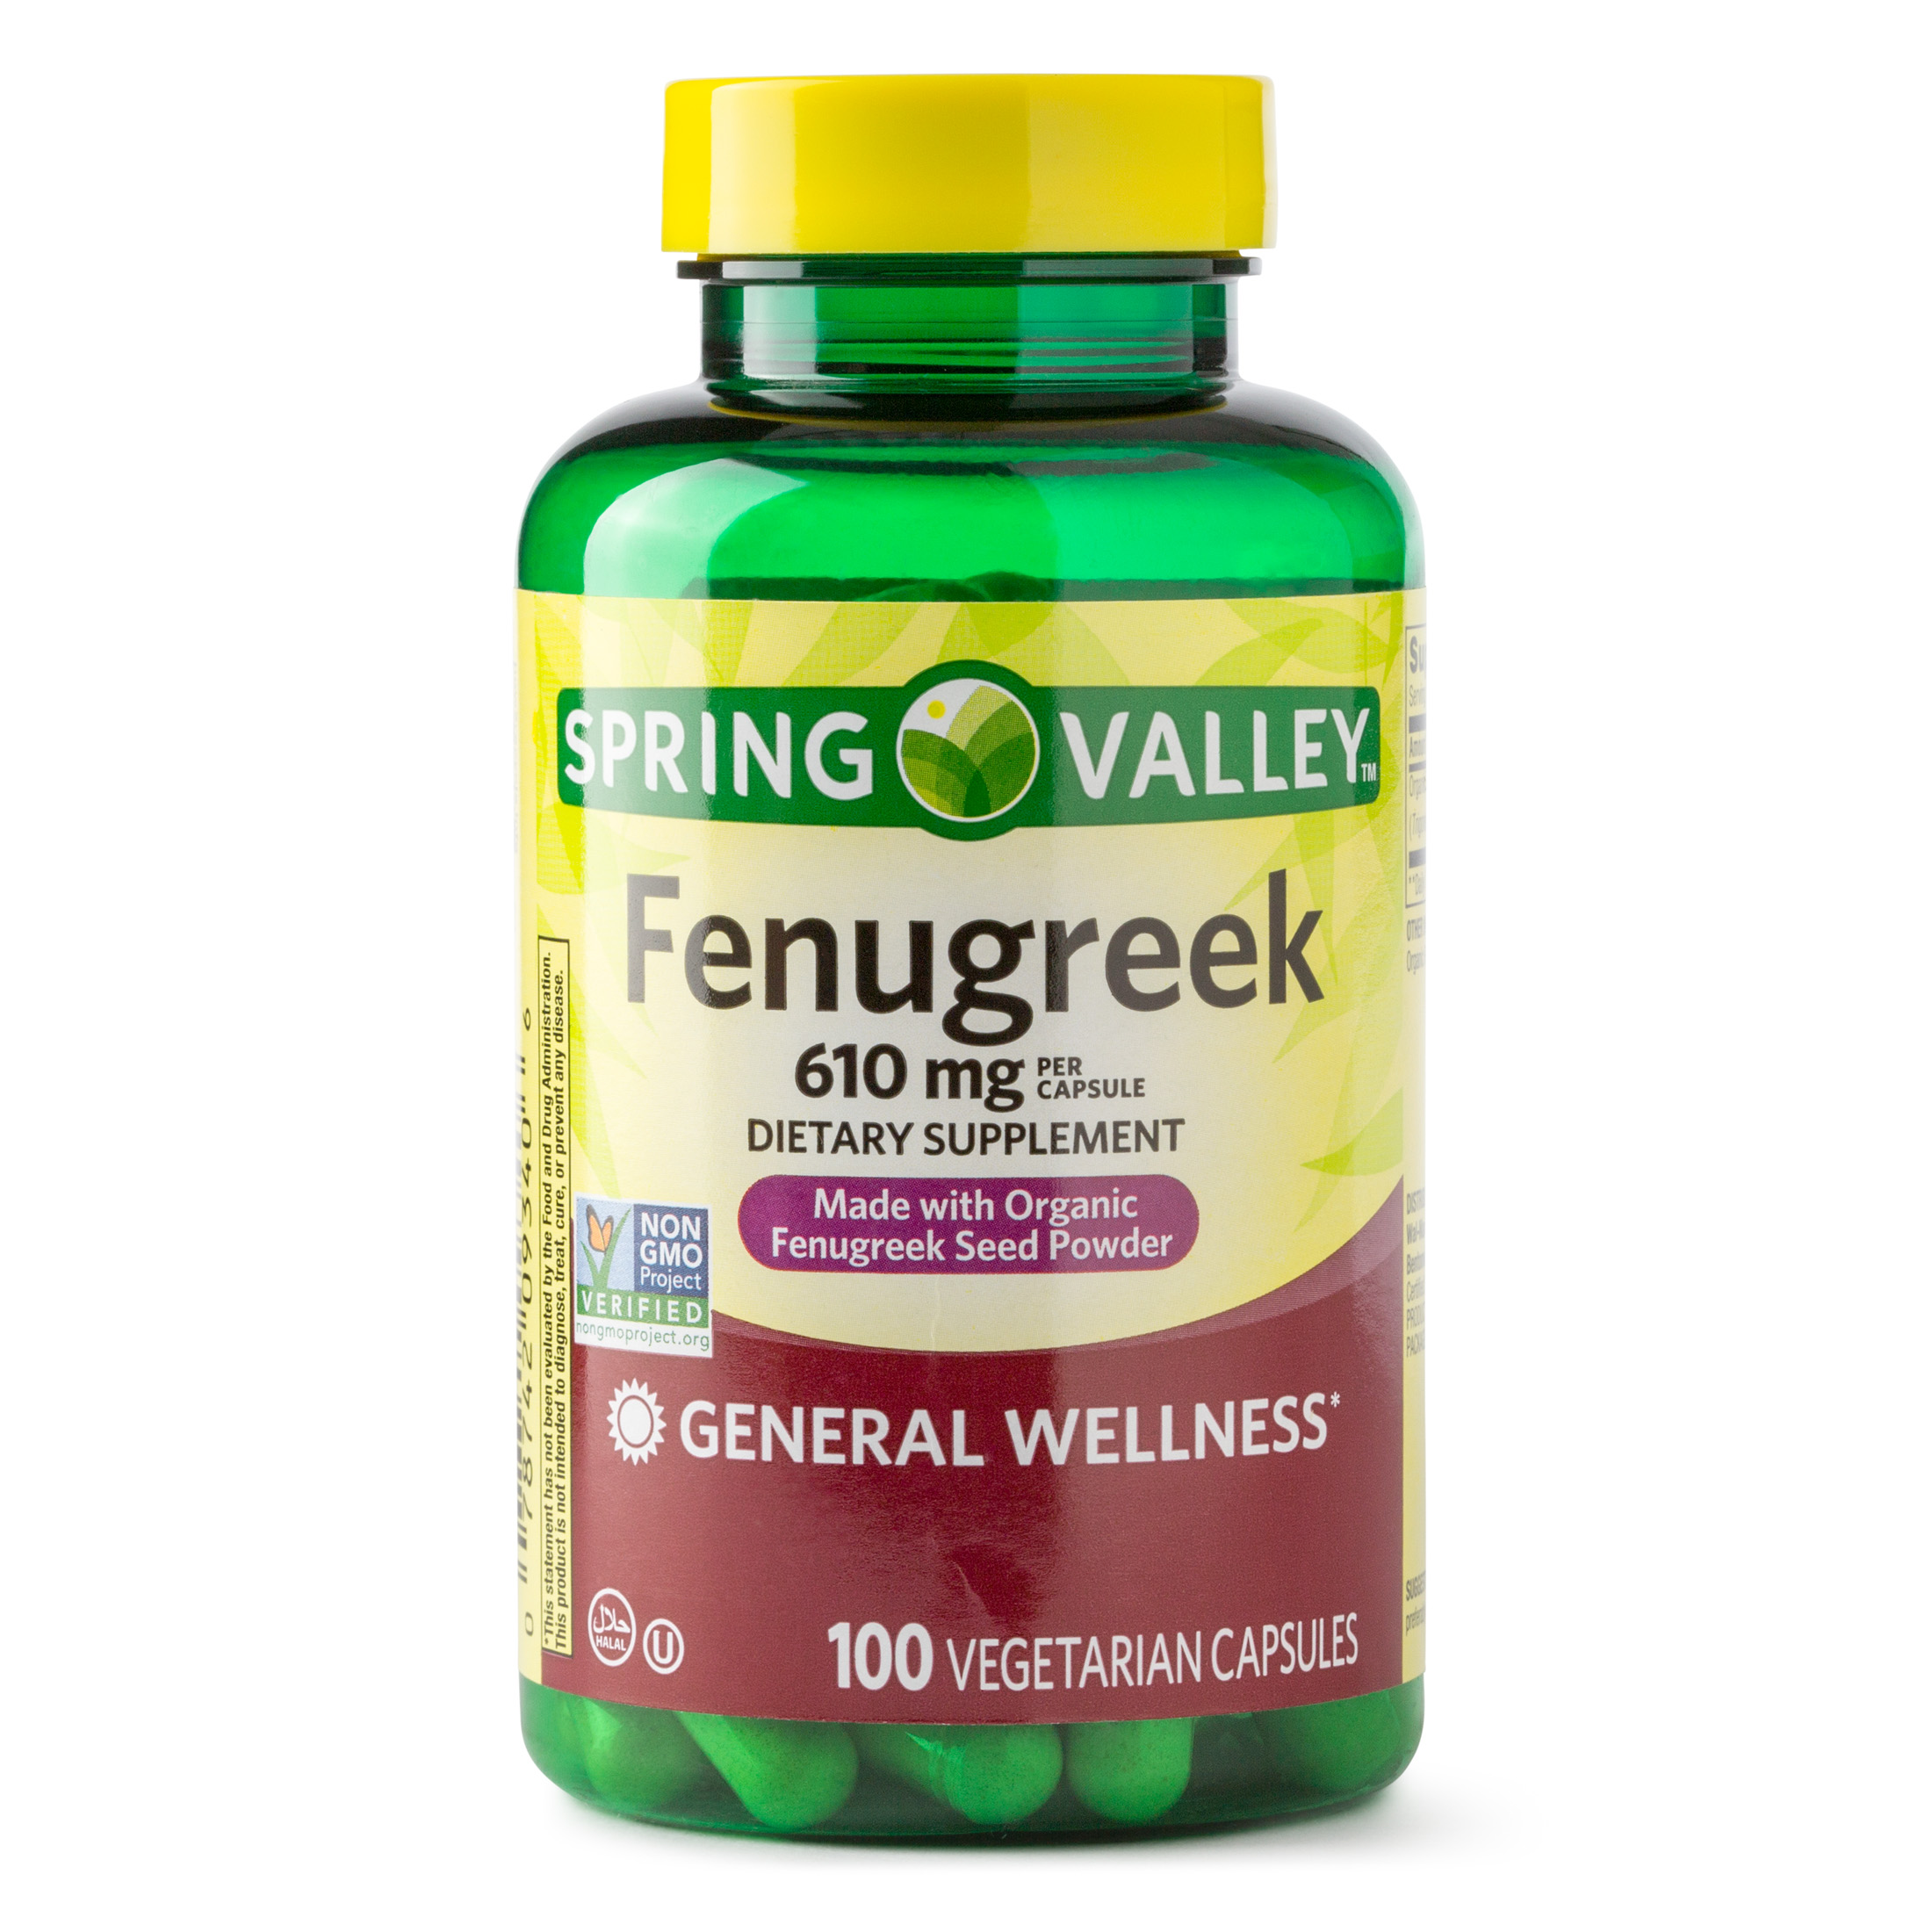 Spring Valley Fenugreek Dietary Supplement Capsules, 610 mg, 100 Ct